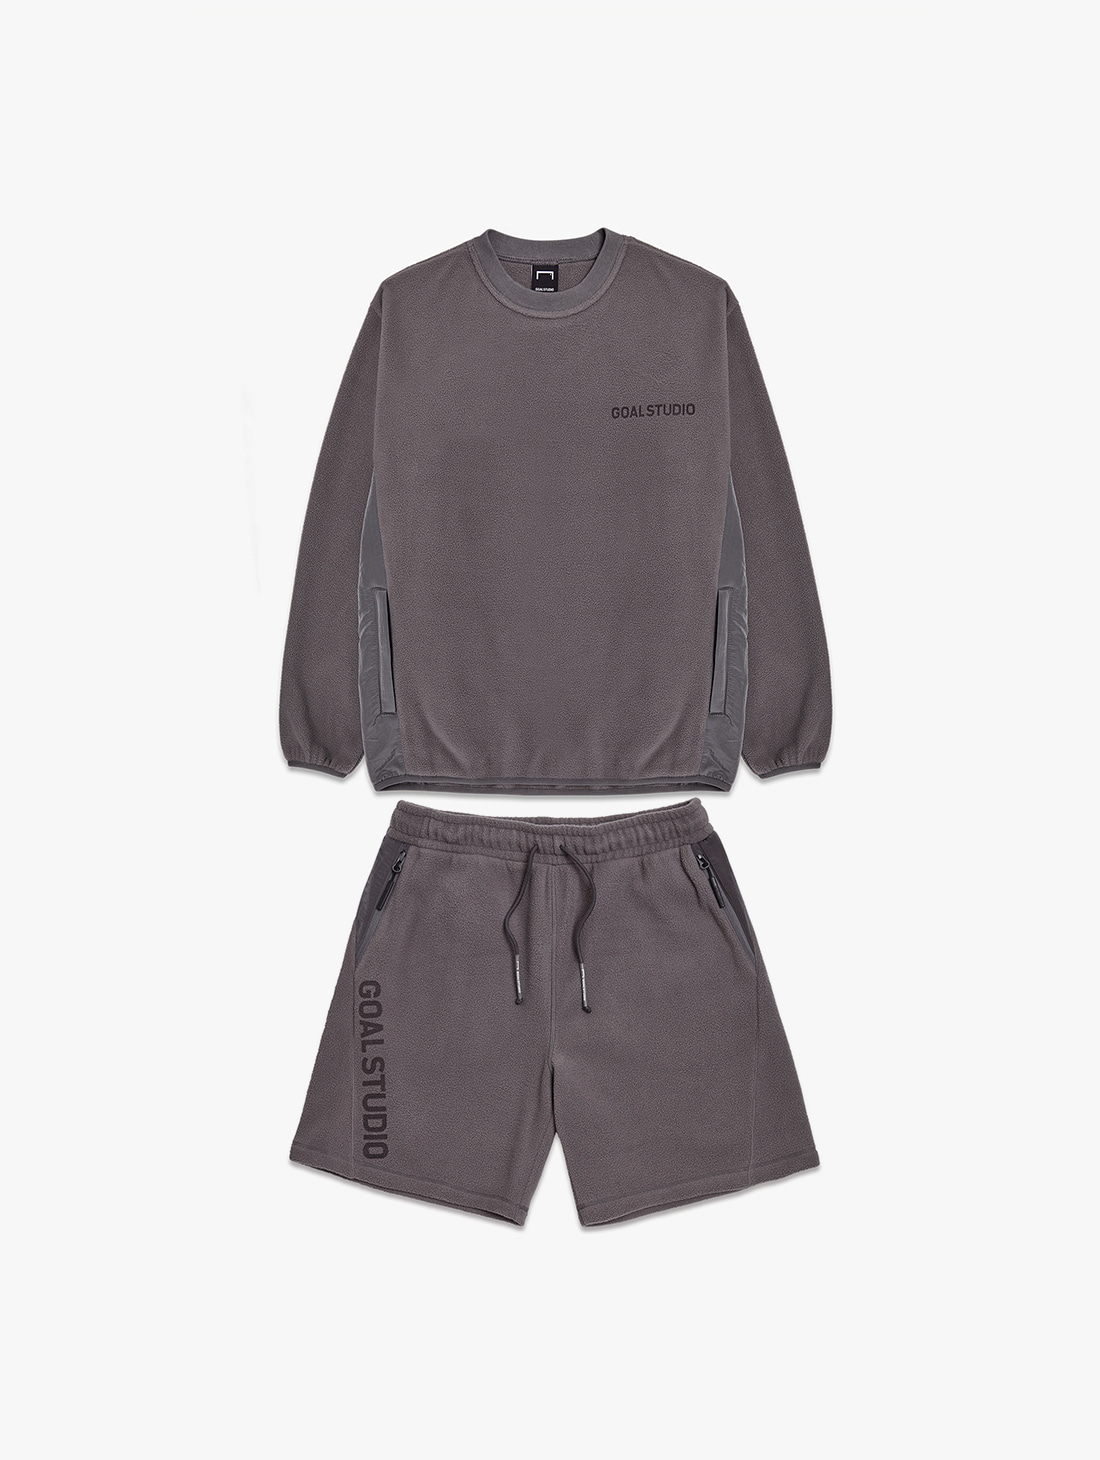 [10% OFF] NYLON METAL MIXED FLEECE SWEATSHIRTS & SHORTS SET